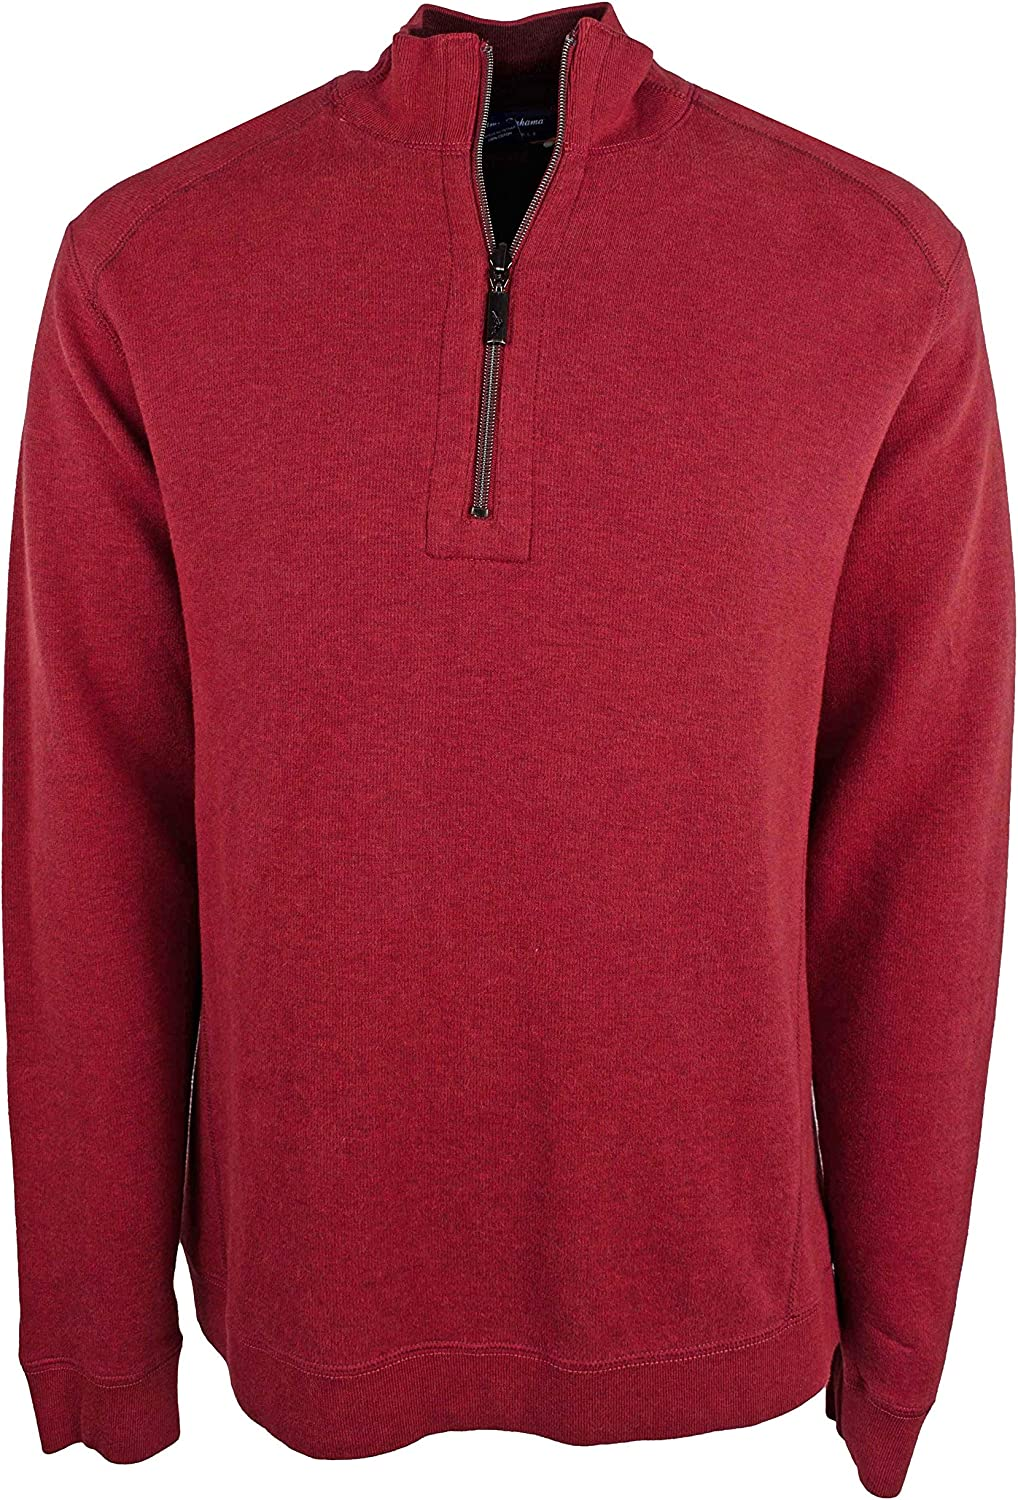 Tommy Bahama Mens Big and Tall Flip Side Classic Reversible Half-Zip Sweater